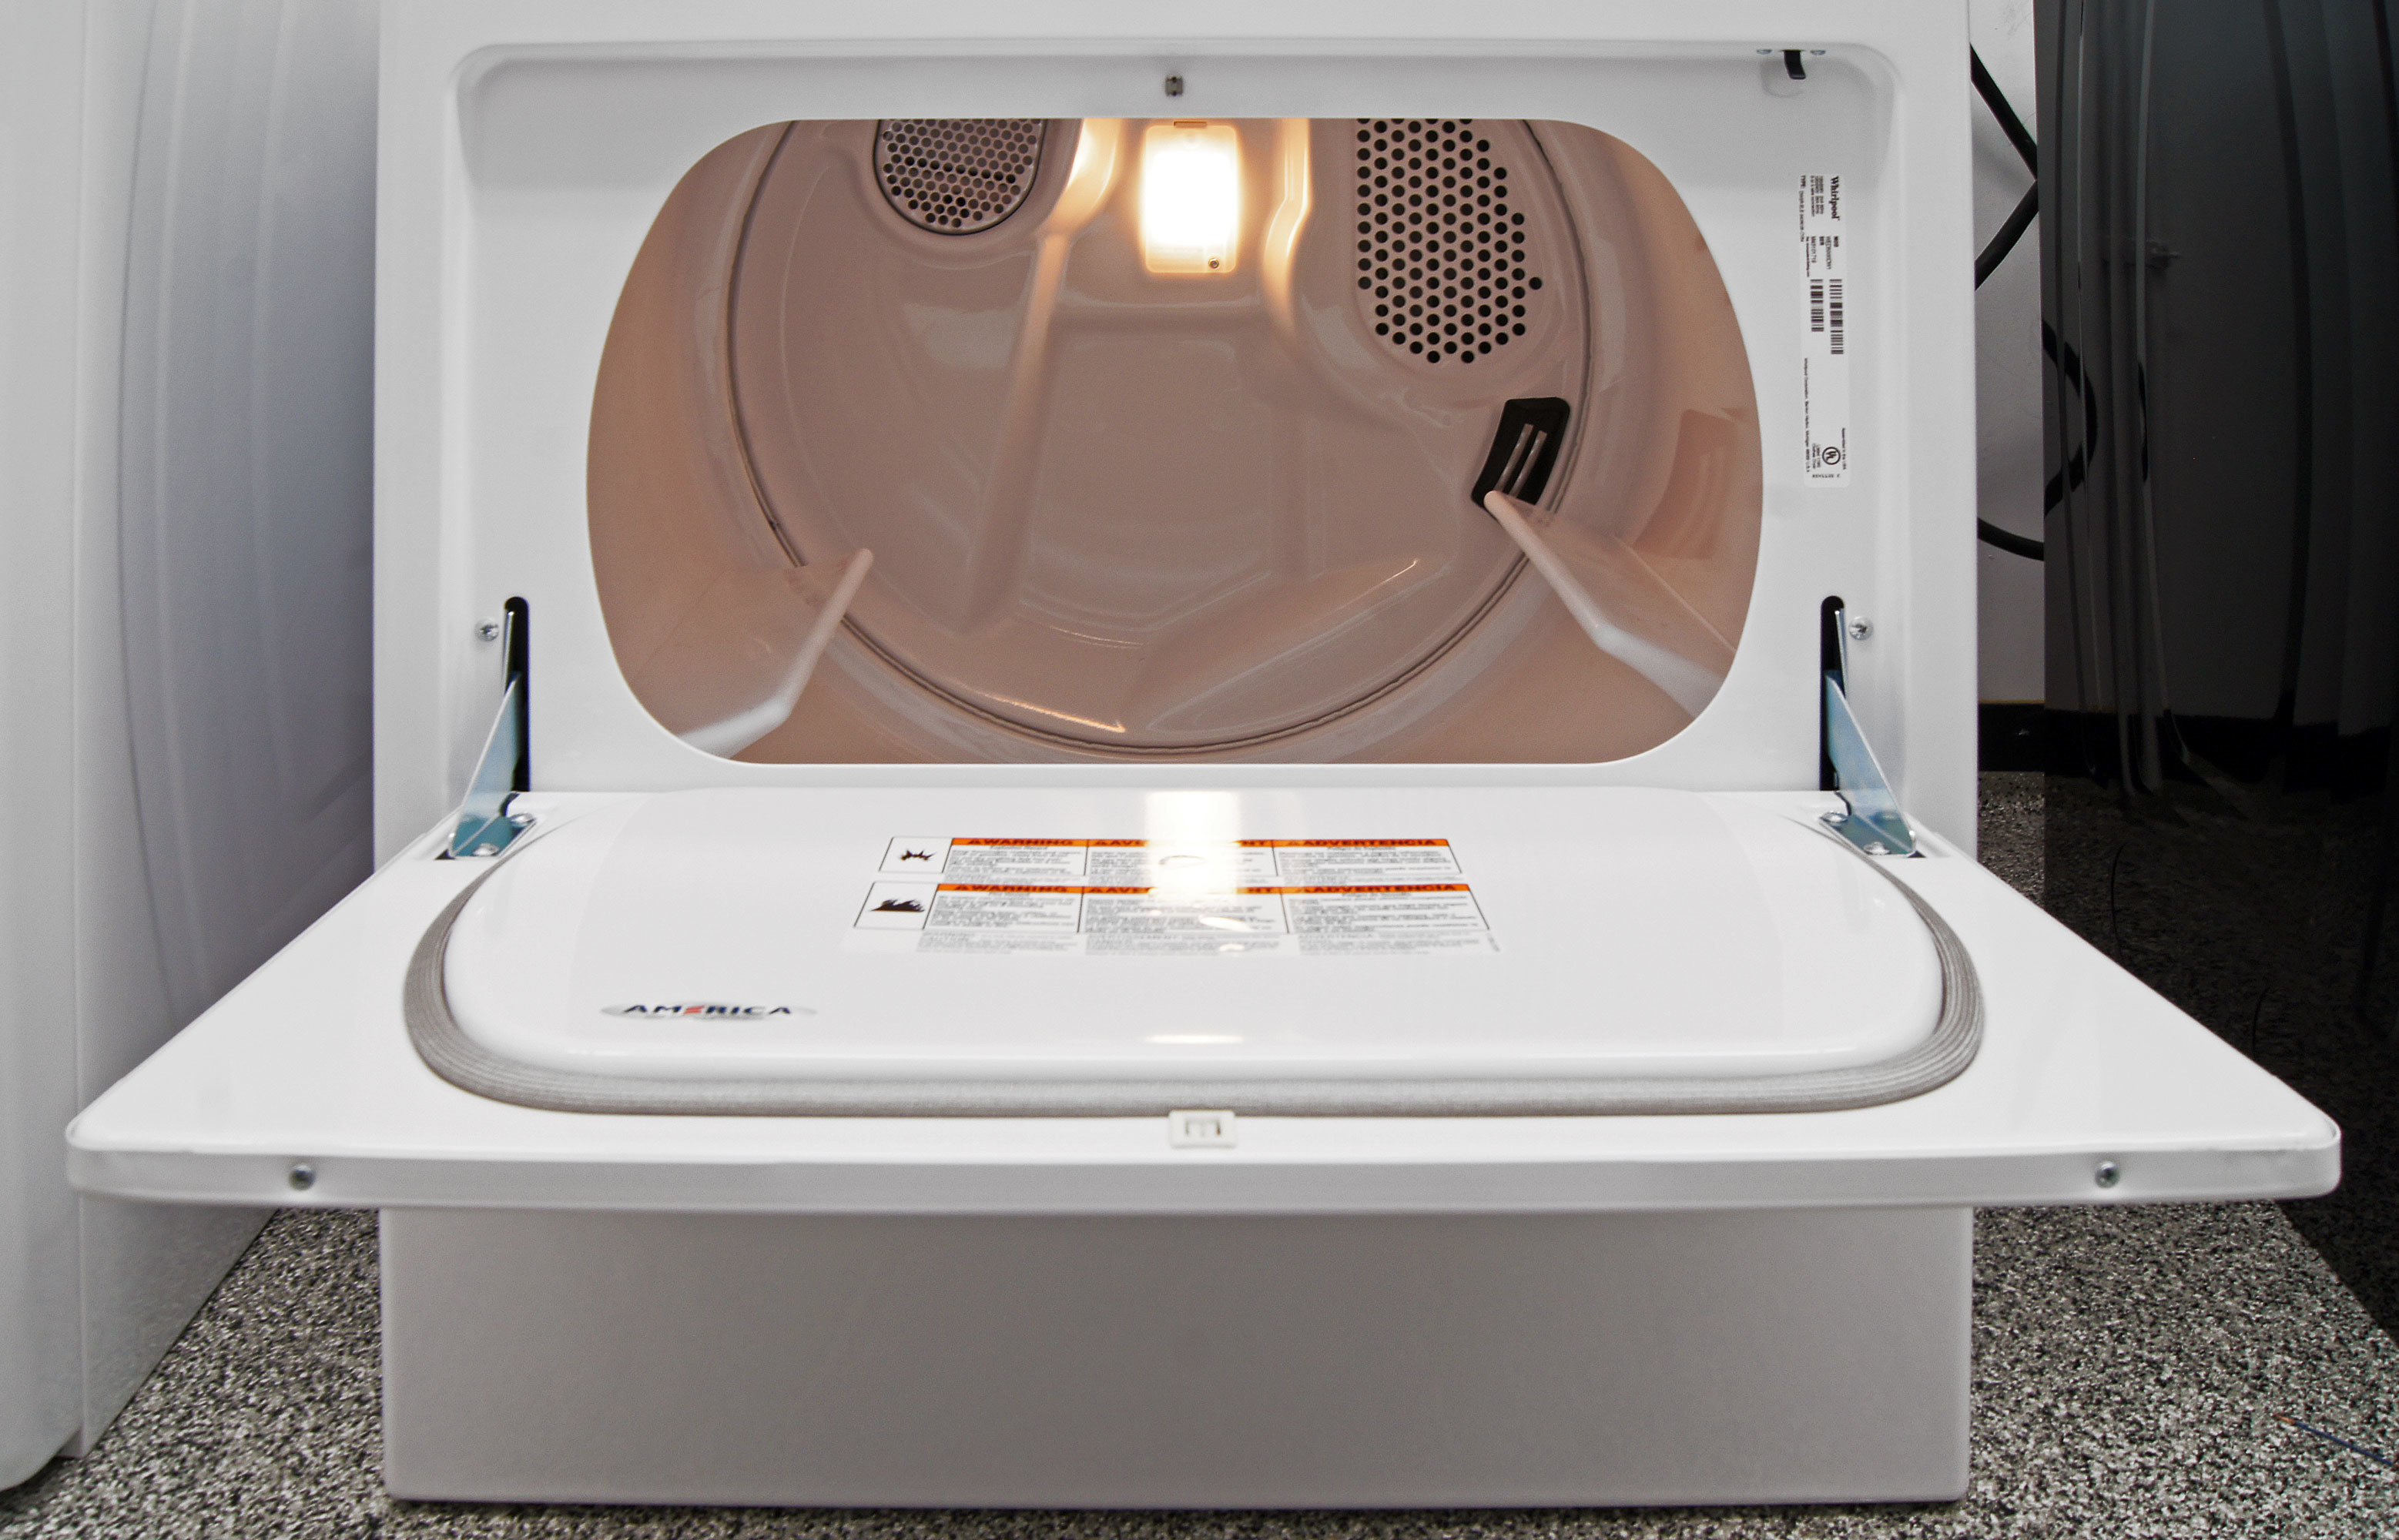 The Whirlpool WED4915EW's hamper door give you something to rest your basket on while folding laundry.